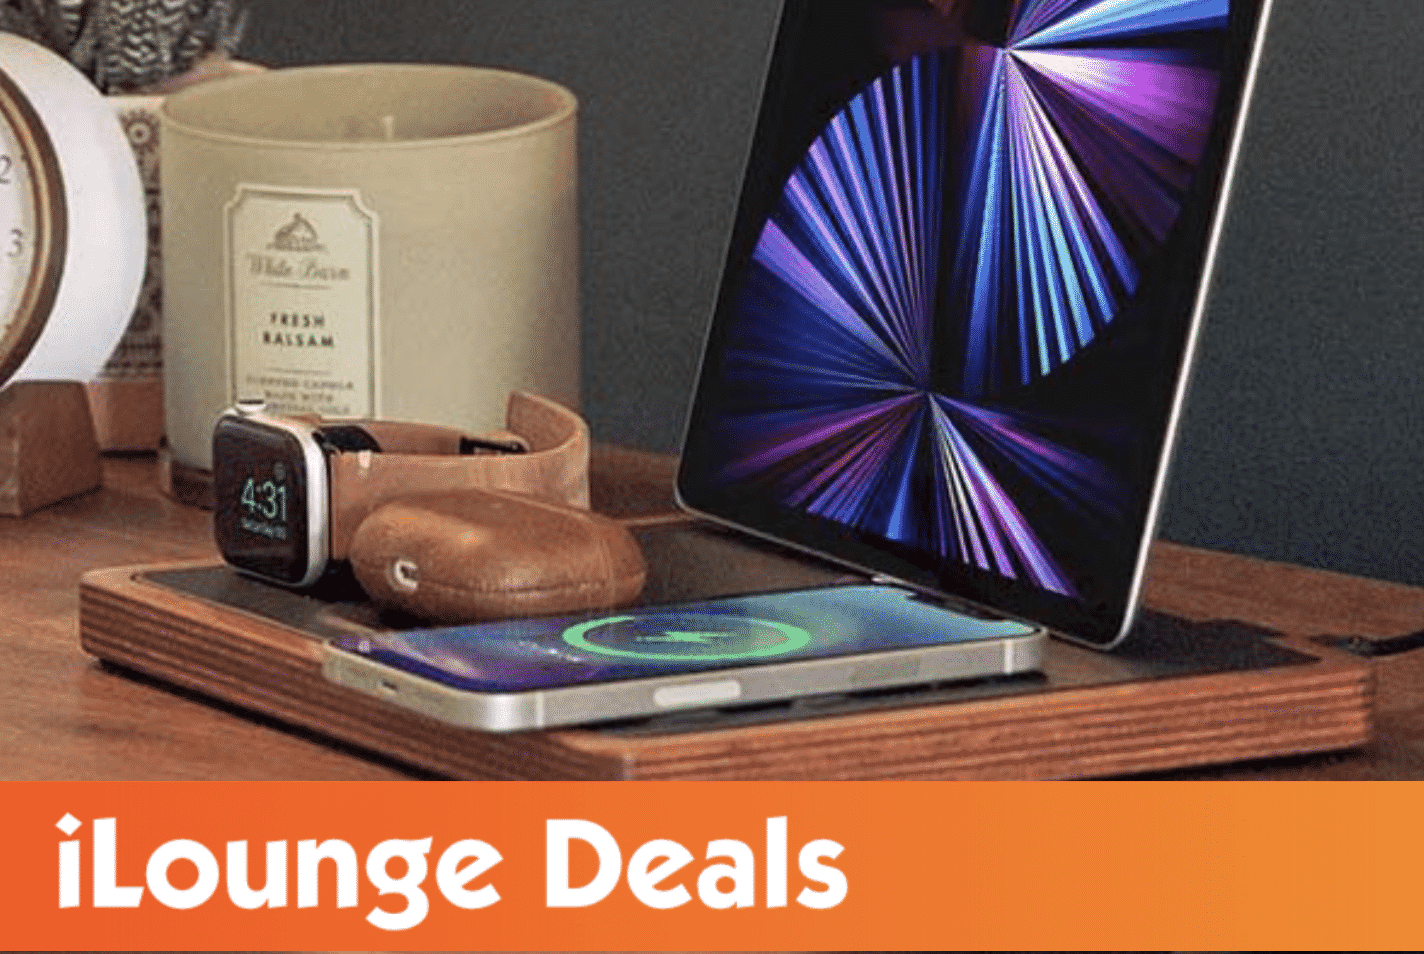 NYTSTND QUAD MagSafe Wireless Charging Station is 6% Off